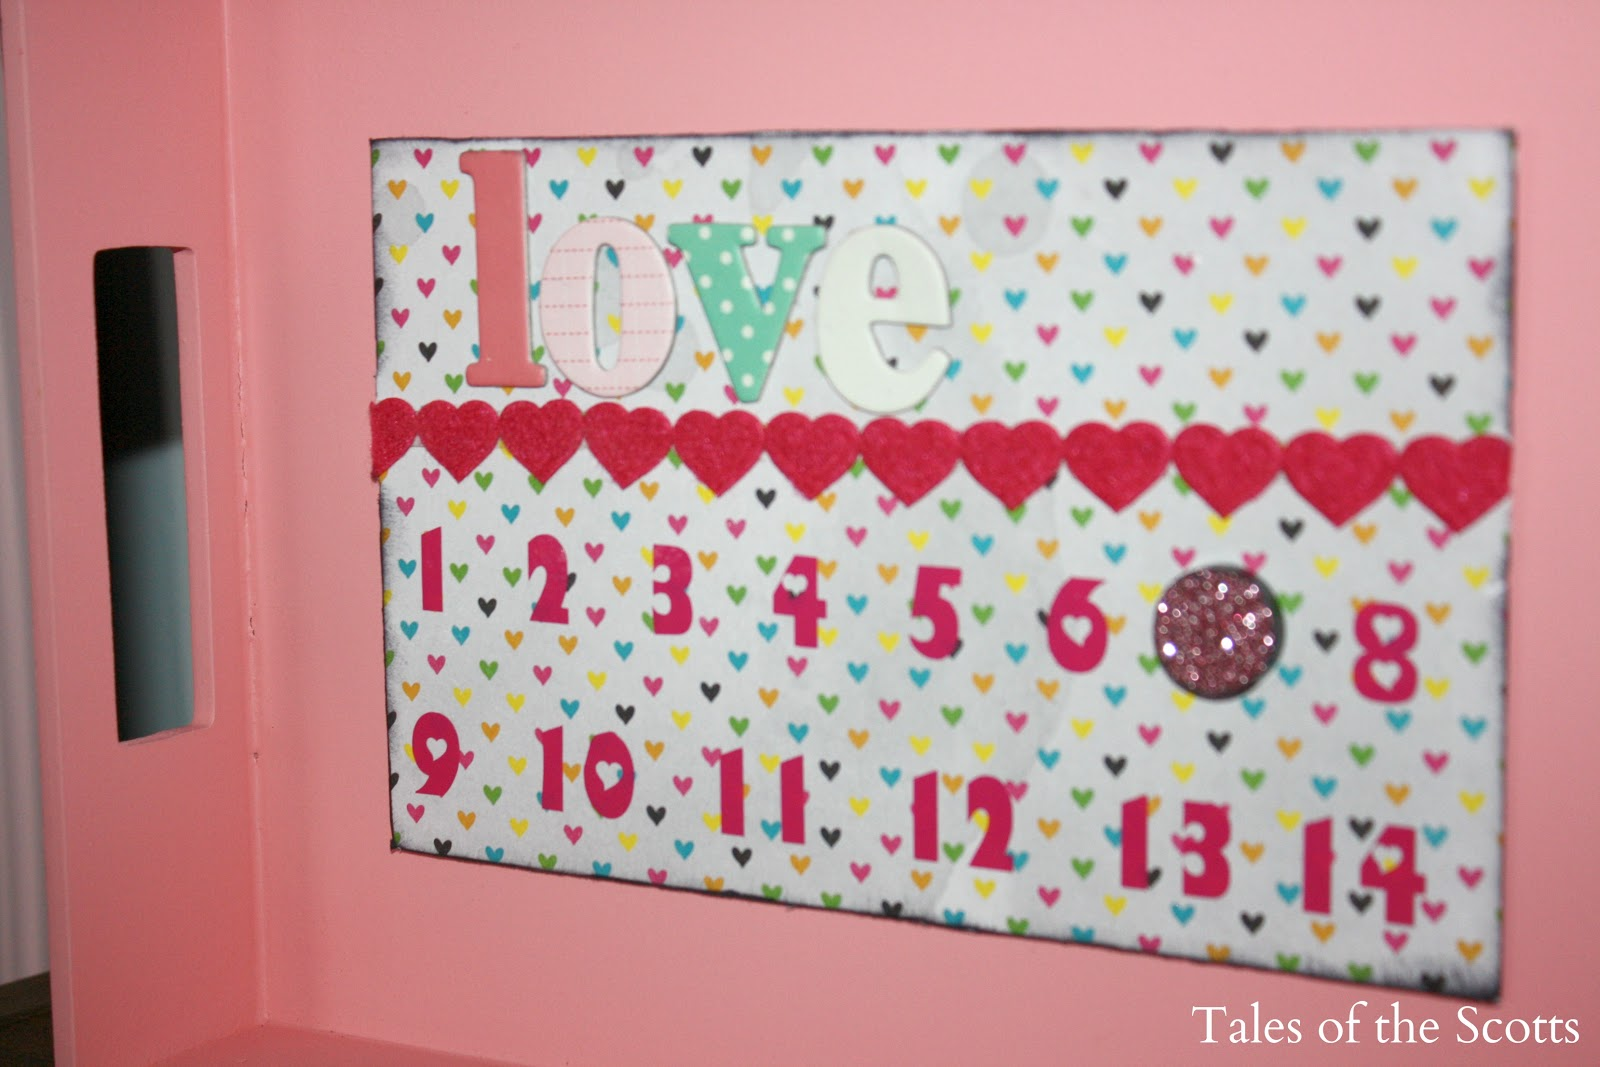 tales of the scotts | DIY, Children's Crafts, Home Decor ...